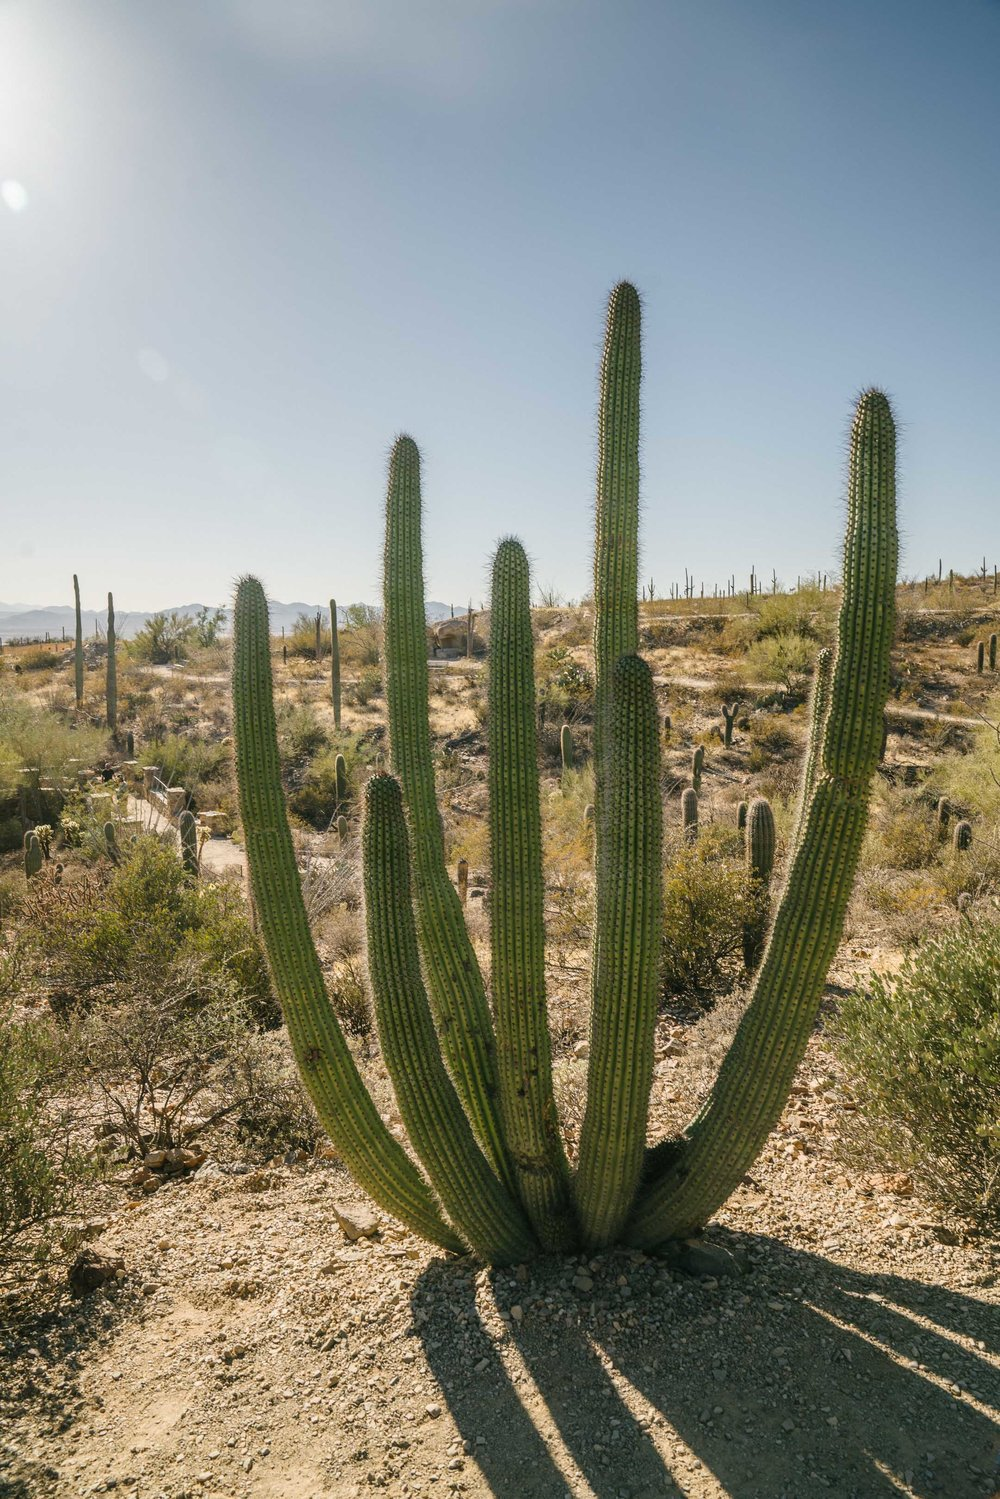 Organ pipe cactus! There's a whole national monument in Southern Arizona devoted to these babies, and we'd love to go check it out sometime!